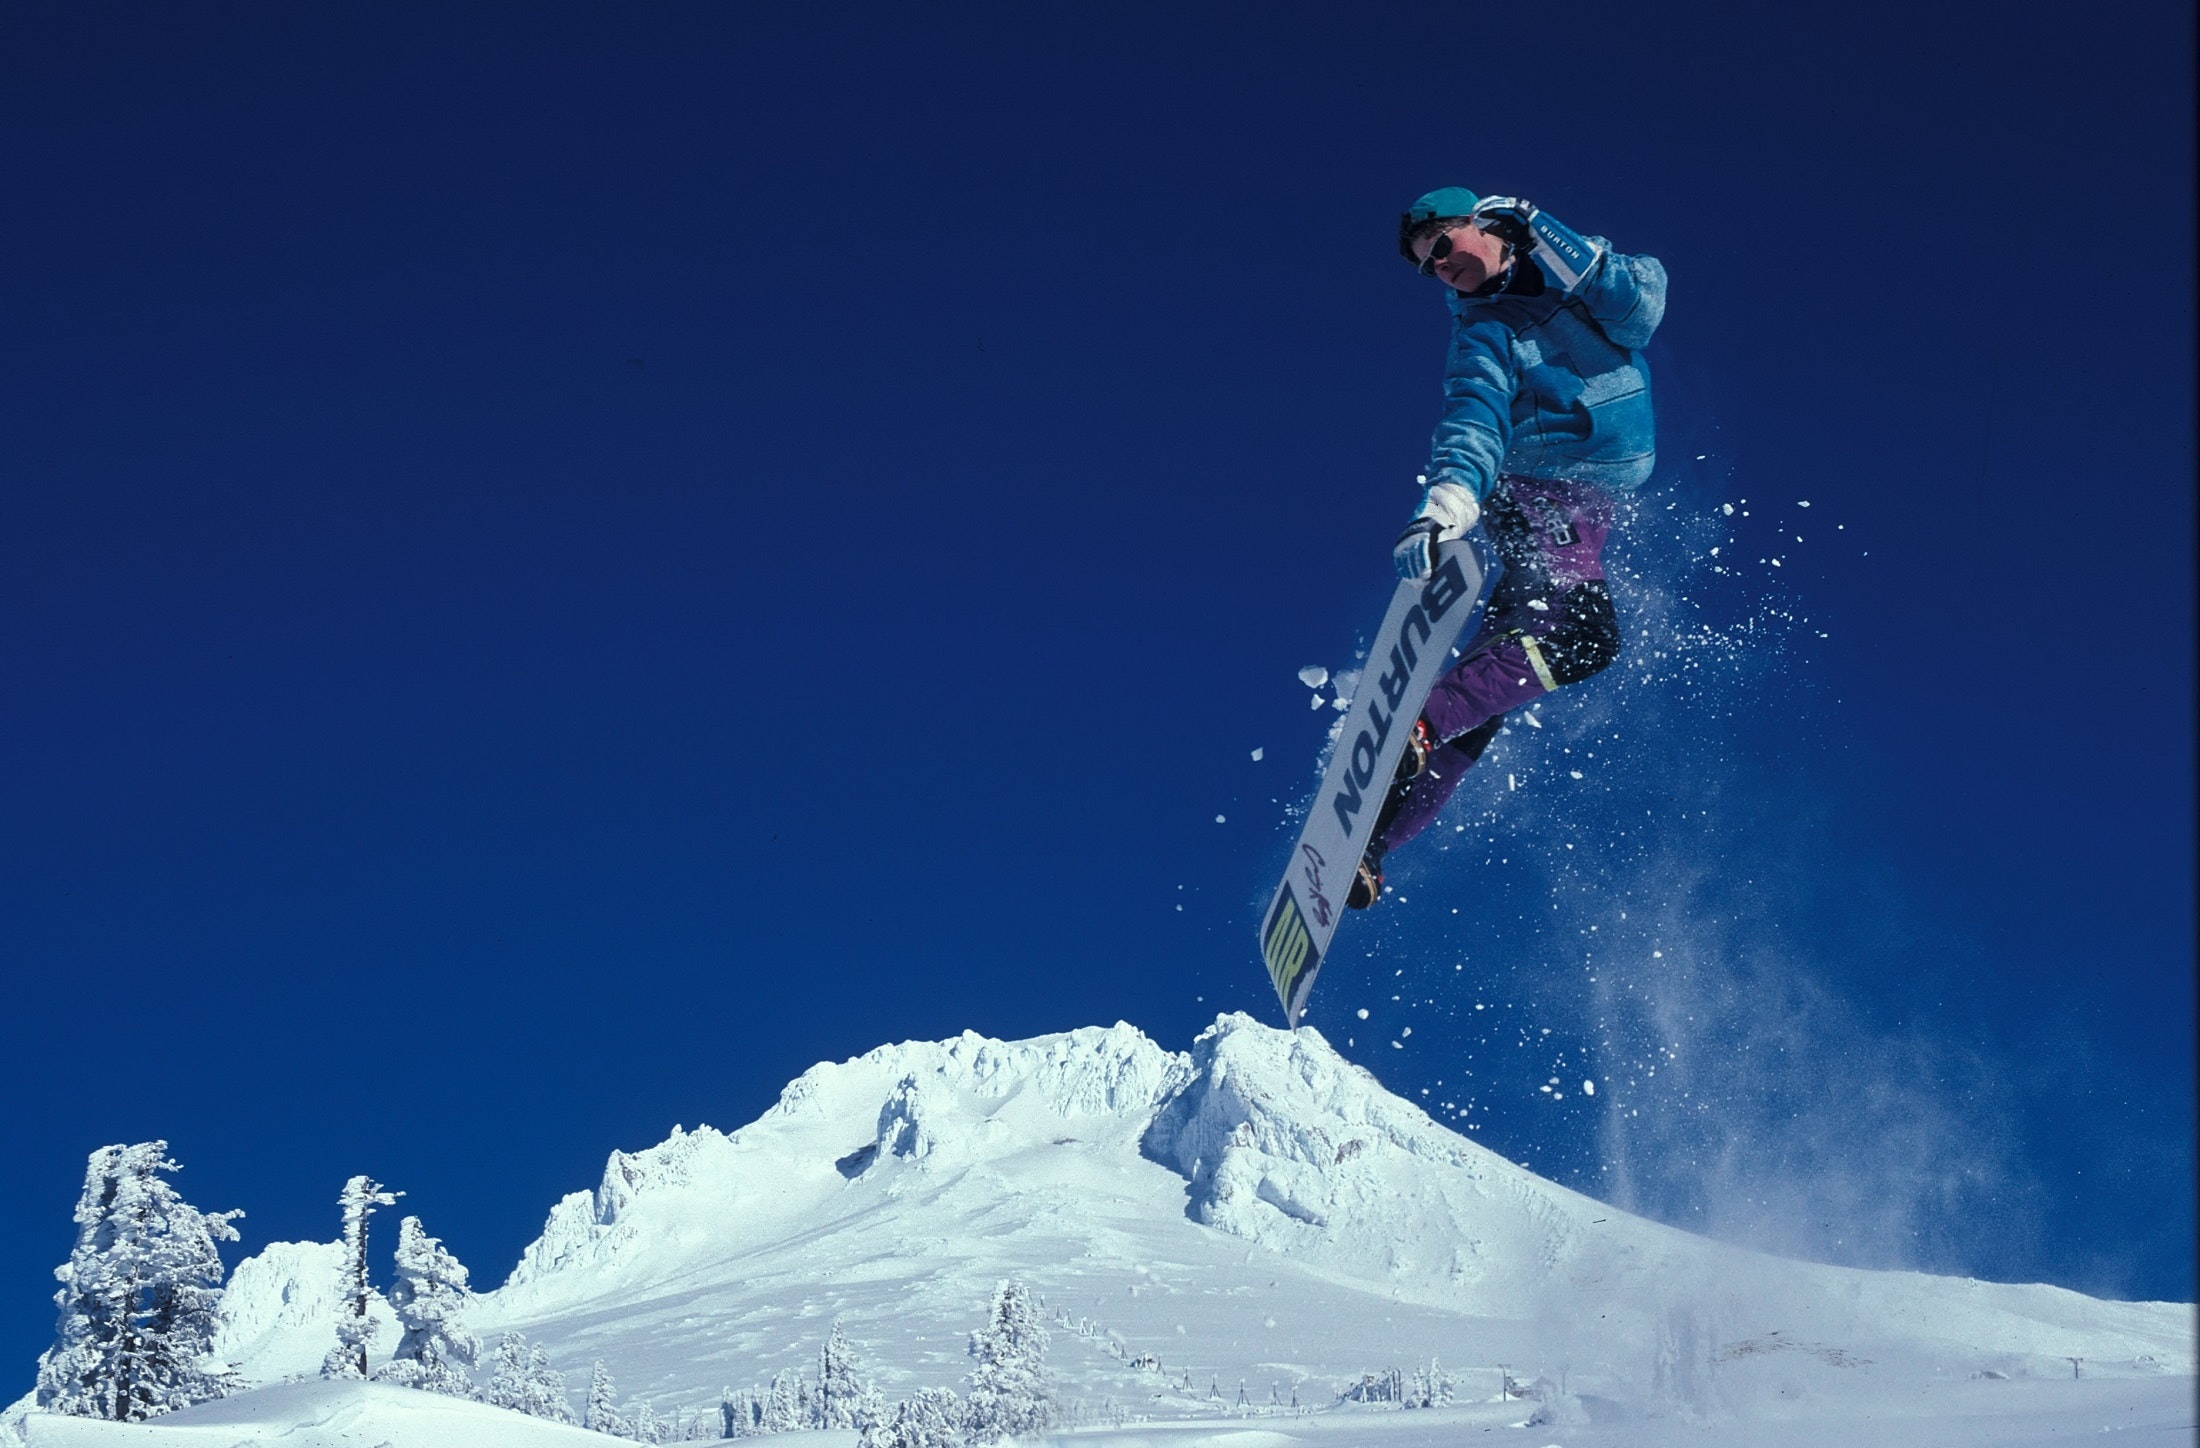 An in-depth review of the best gifts for snowboarders available in 2019.